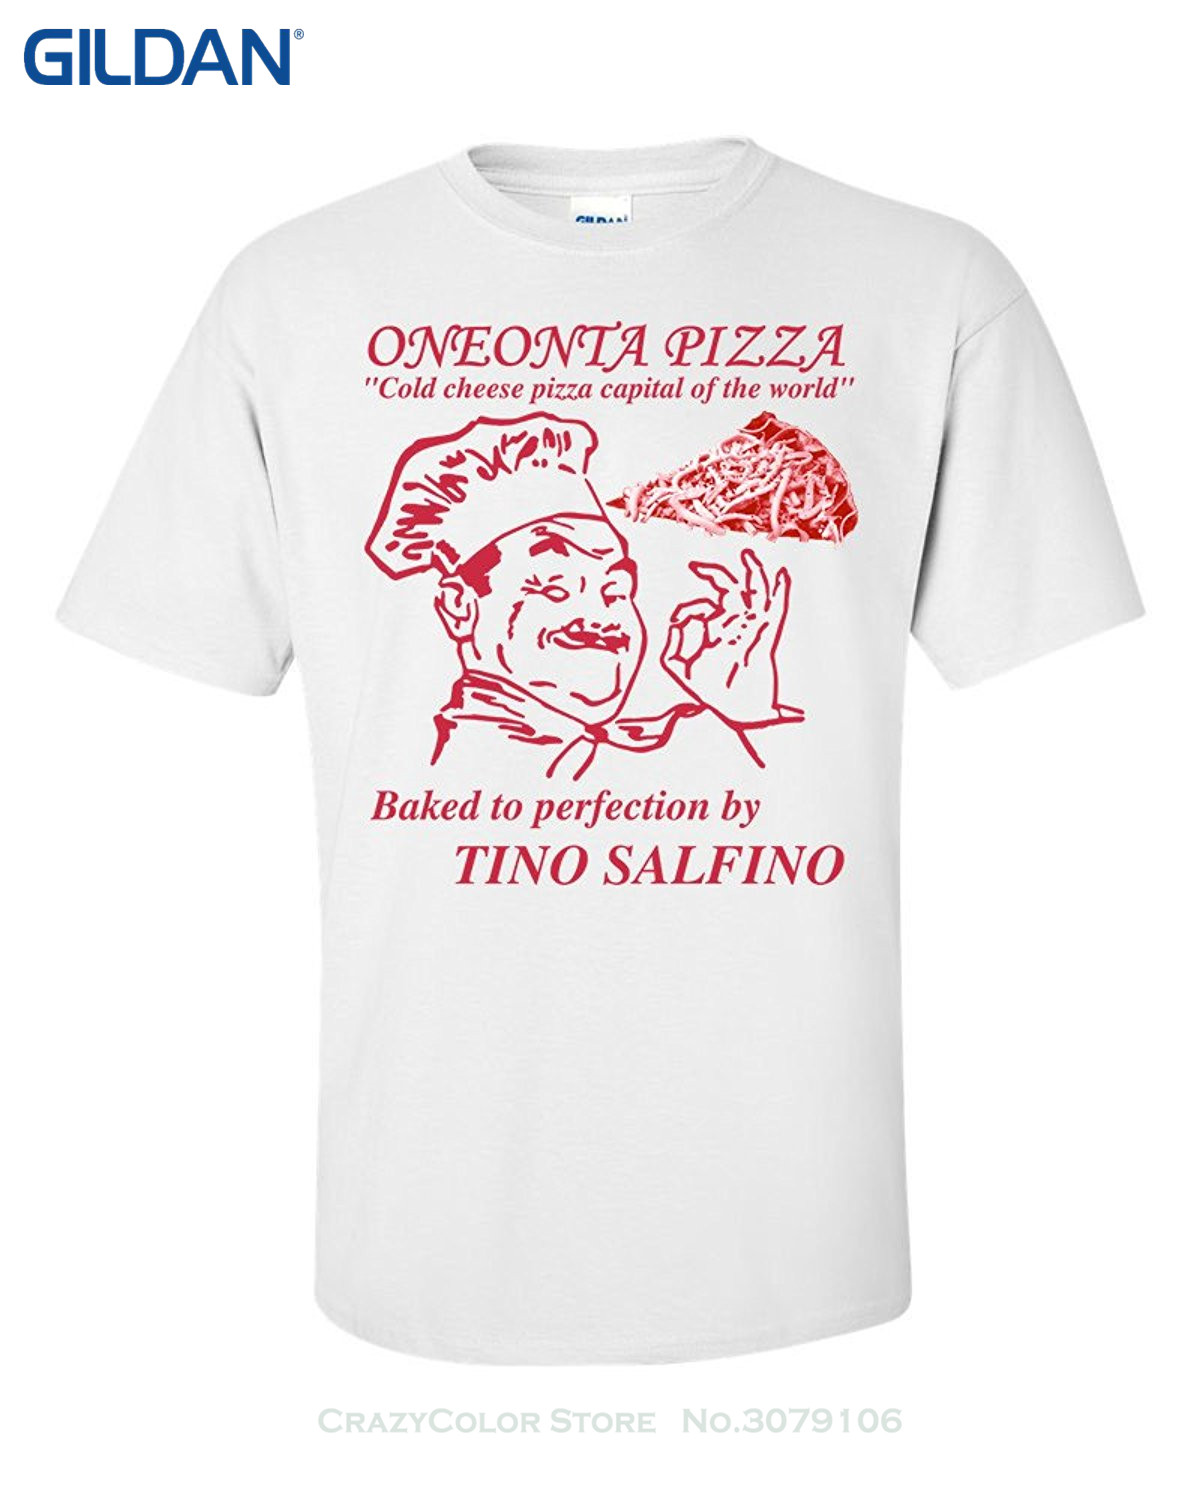 Gray Style Oneonta Cold Cheese Pizza Men's T-shirt - Tino Salfino's - Cold Cheese Pizza Capital Of The World image